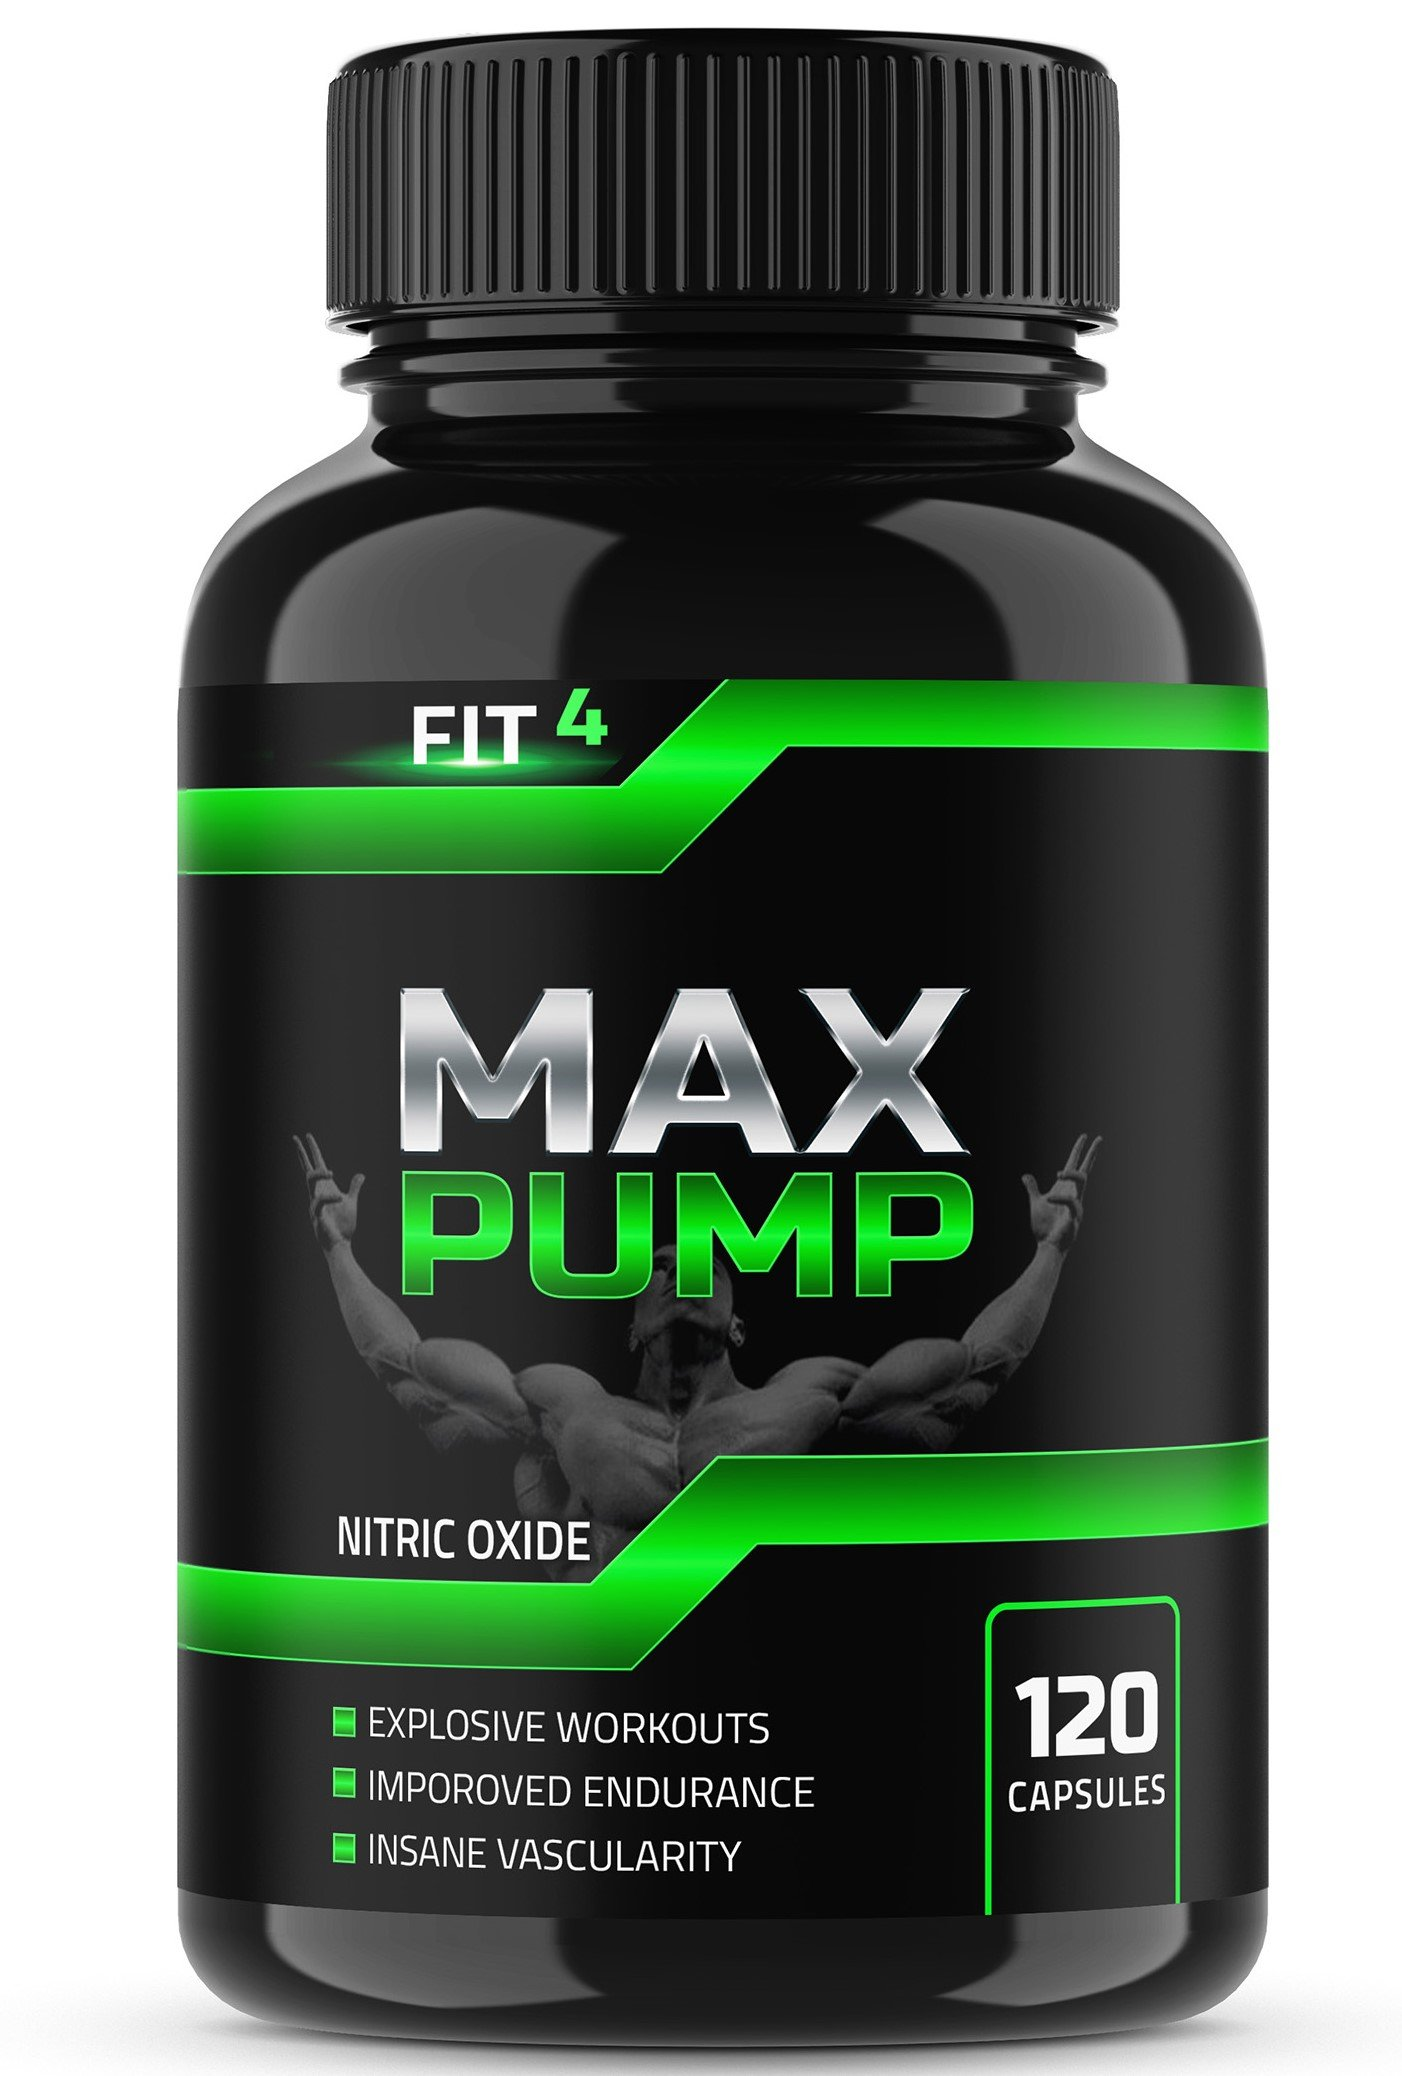 Max Pump, Extra Strength L Arginine ,Nitric Oxide Supplement for Muscle Growth, Vascularity & Energy - Powerful NO Booster Essential Amino Acids To Train Longer & Harder